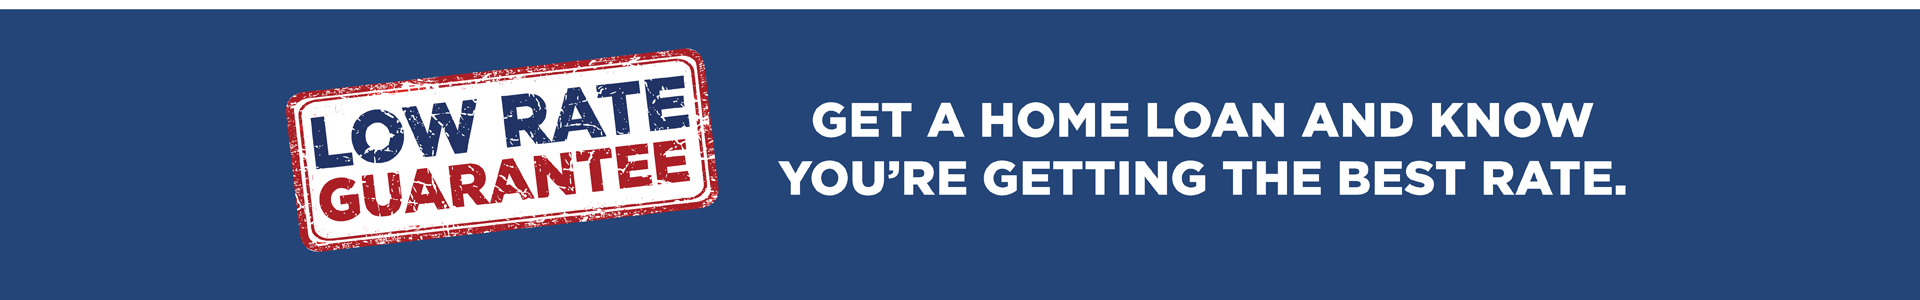 Low Rate Guarantee. Get a home loan and know you're getting the best rate.